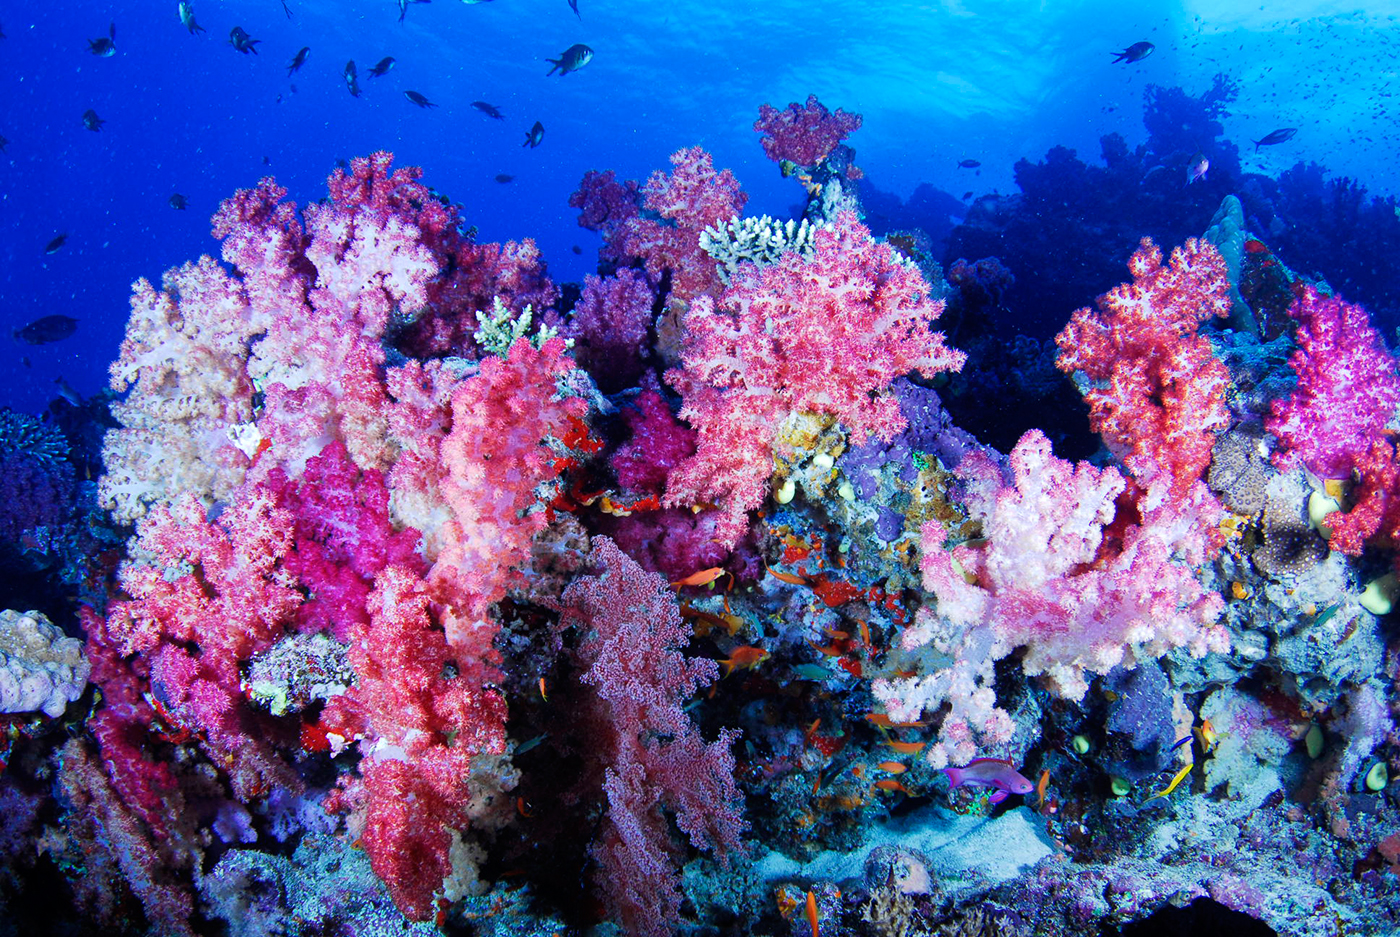 ... the white wall fiji red soft corals nudibranch dance mixed corals on